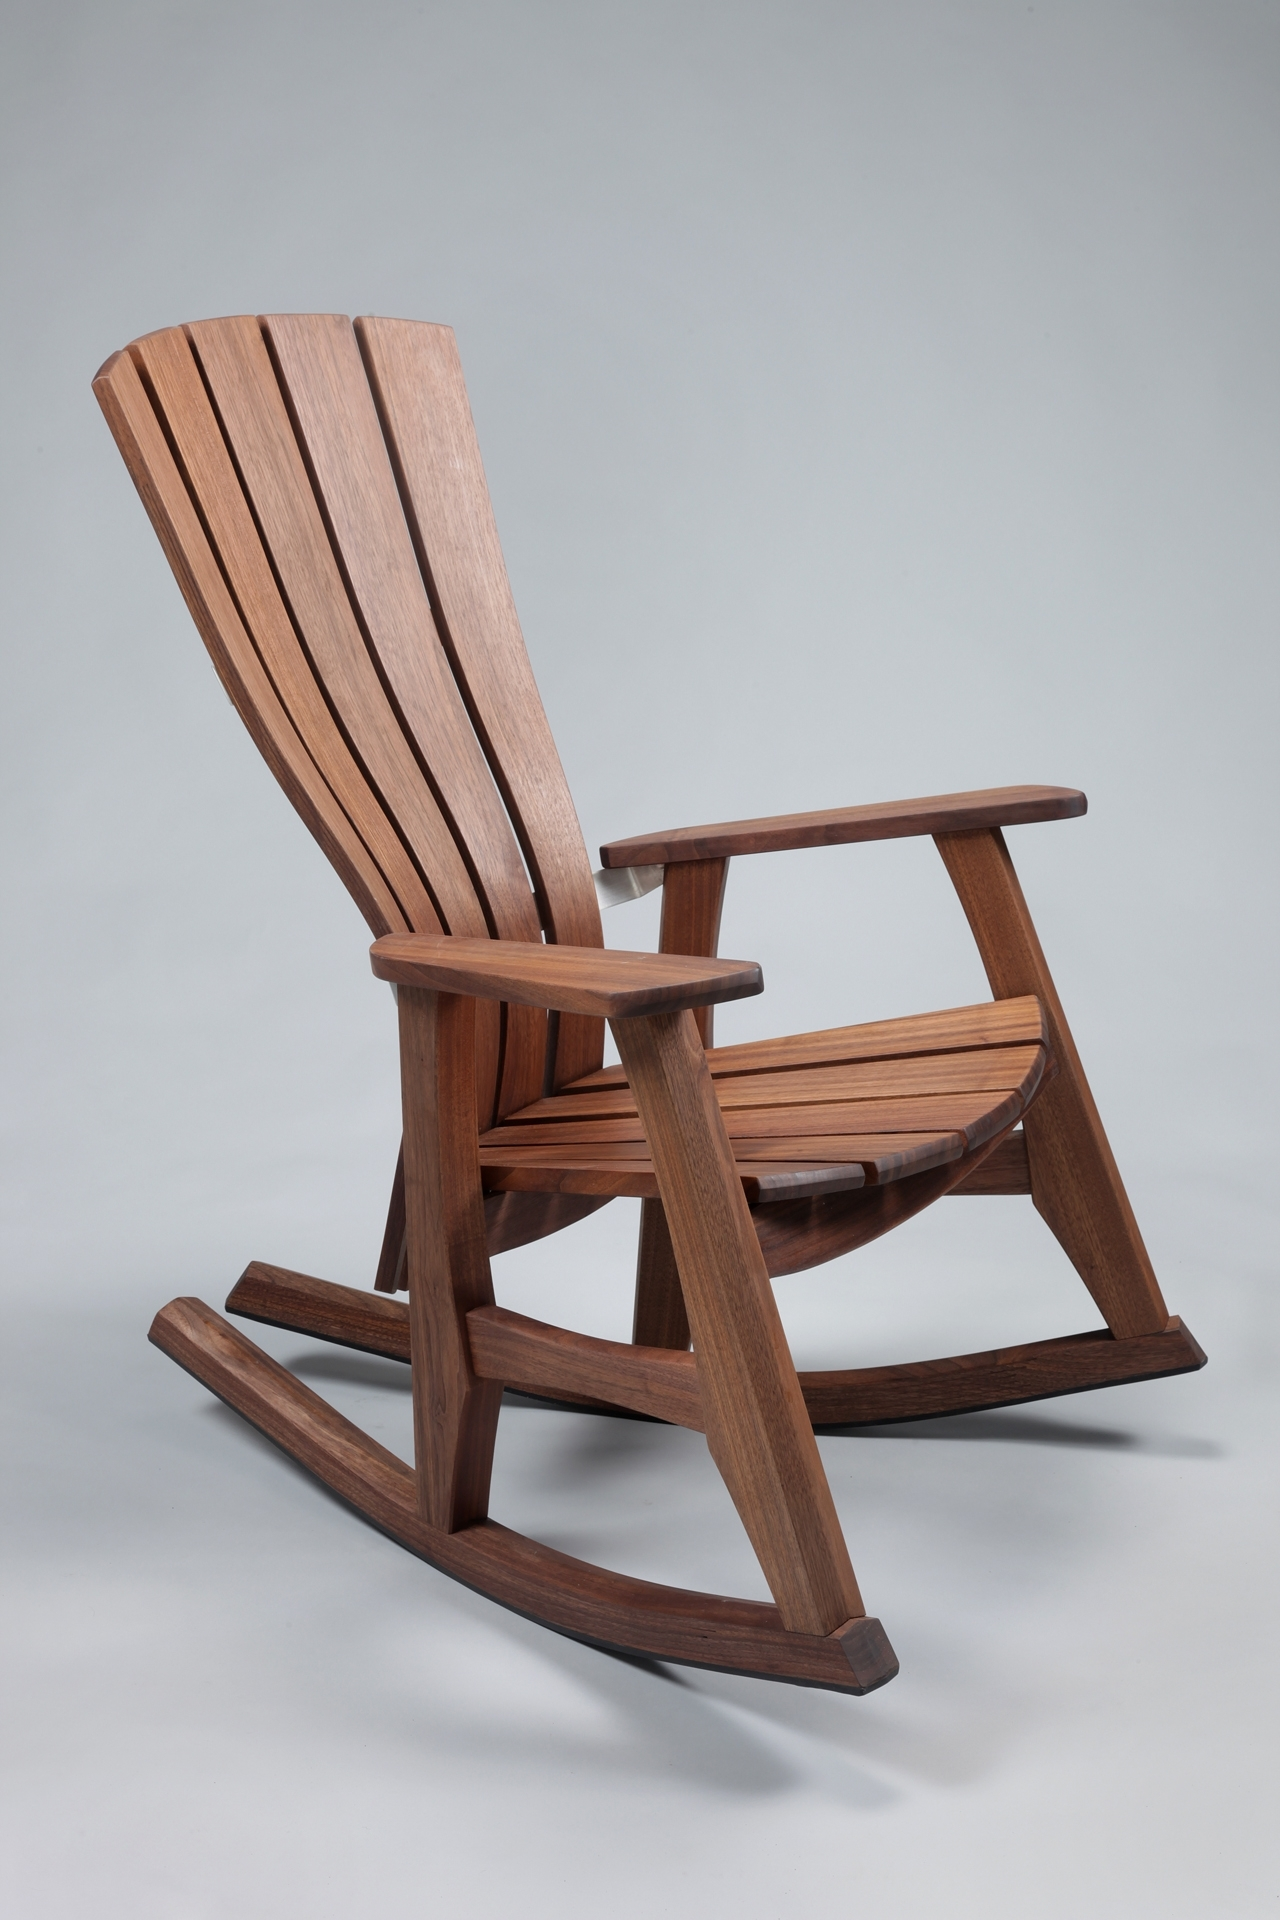 Sunniva Rocking Chair Furniture Ideas Chairs Wooden Outdoor With Most Current Unique Outdoor Rocking Chairs (View 2 of 20)